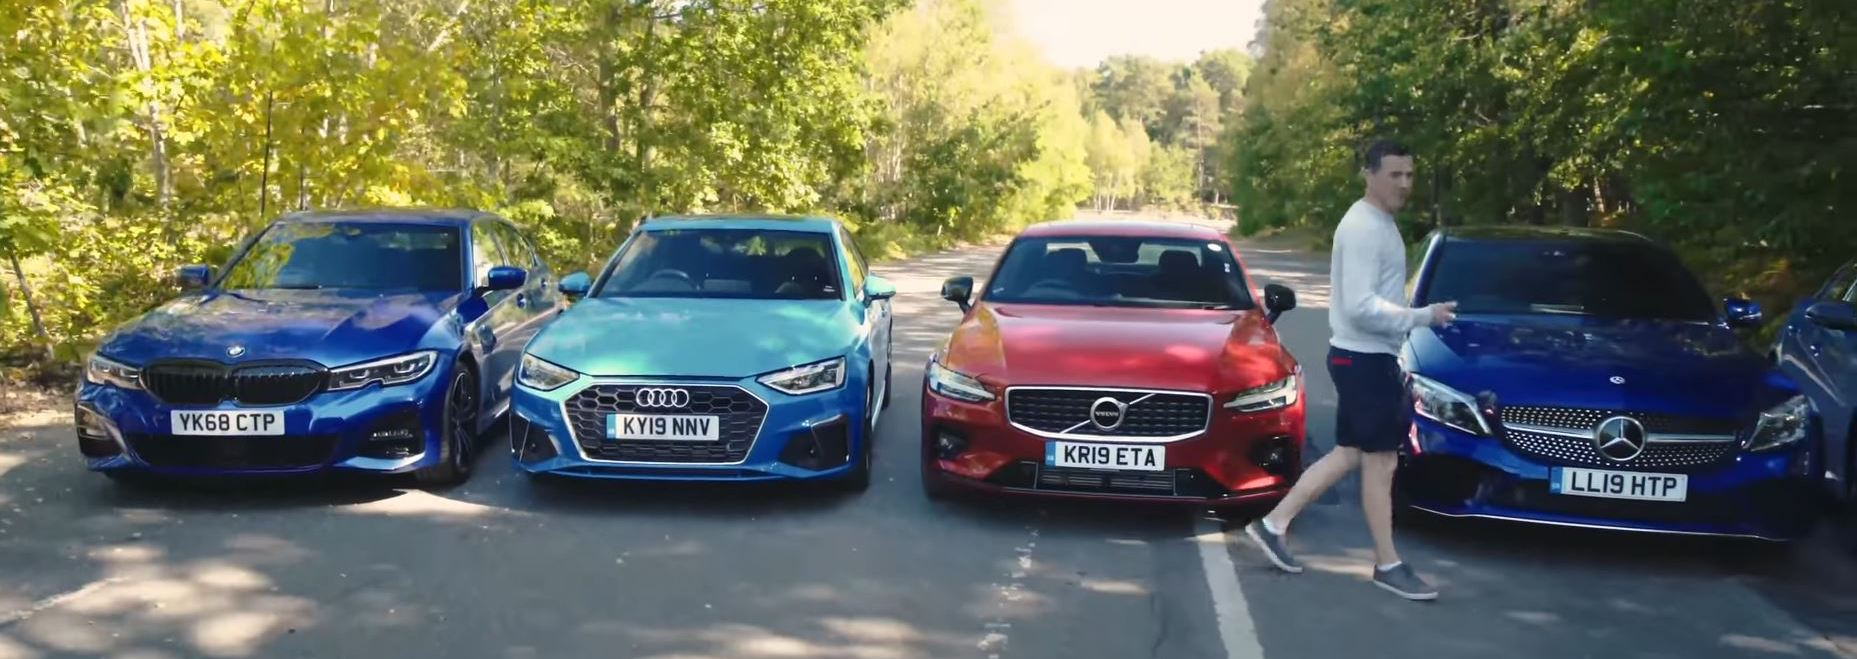 BMW 3 Series Review vs. Audi A4, C-Class, Volvo S60 and Giulia Sports Sedans